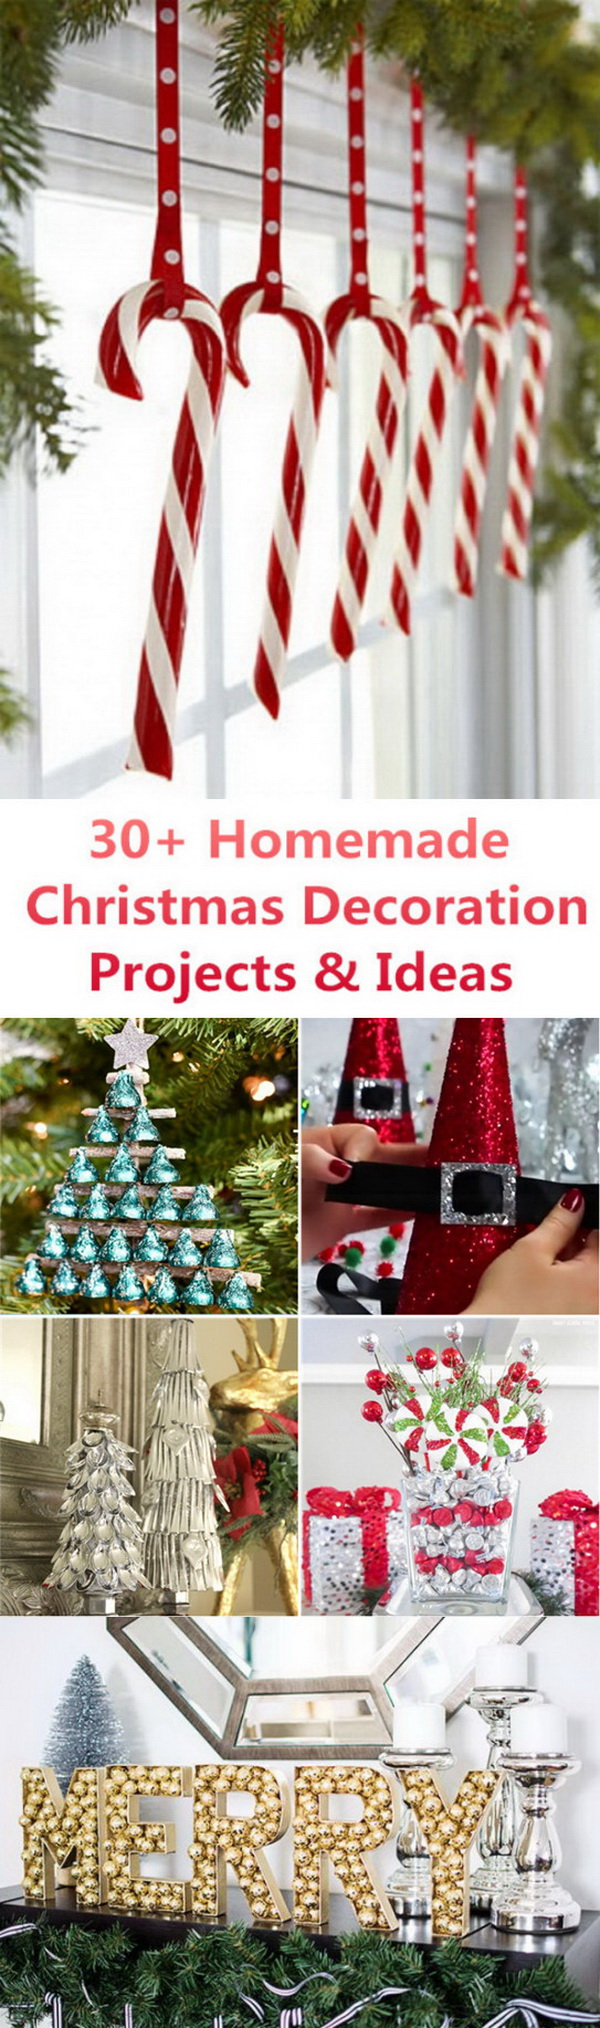 30+ Homemade Christmas Decoration Projects & Ideas: Christmas is probably the best time of the year for decoration! With a little bit of time and creativety, a few extra dollars, you can try your hand at some homemade projects and ideas for your Christmas decorations.  These unique homemade Christmas ornaments will give you a great chance to express your creativity and it can be with a lot of fun.